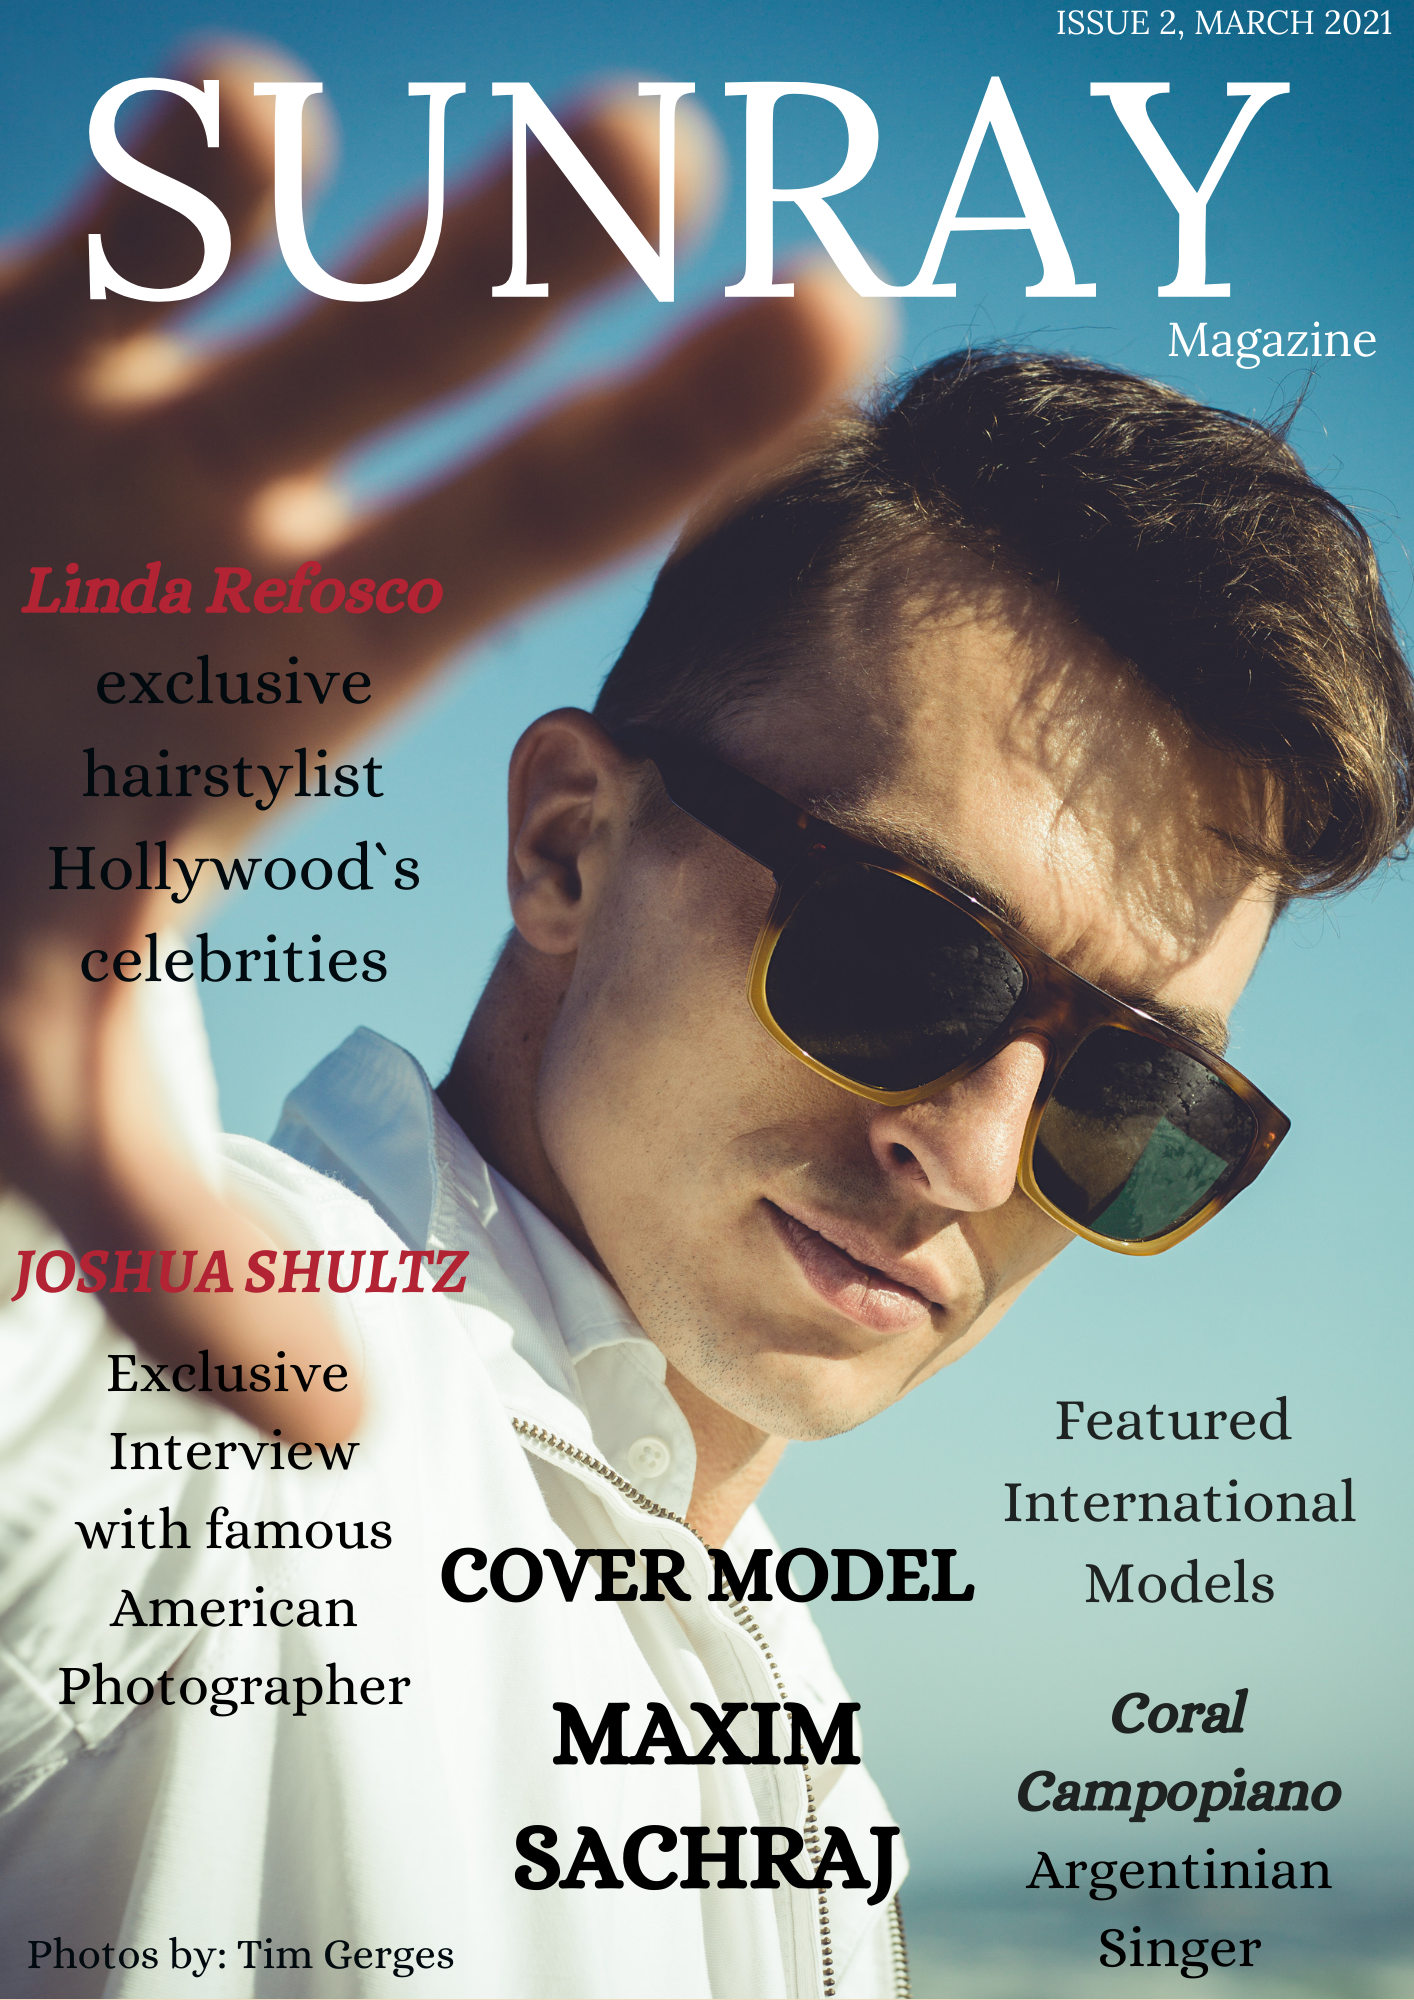 SUNRAY MAGAZINE Cover, Issue 2 March 2020. Cover Model Maxim Sachraj. Celebrity Hairstylist Linda Refosco, exclusive hairstylist to Hollywood's Celebrities. Joshua Shultz exclusive interview with famous american photographer. Featured international Models. Coral Campopiano, Argentinian Singer.